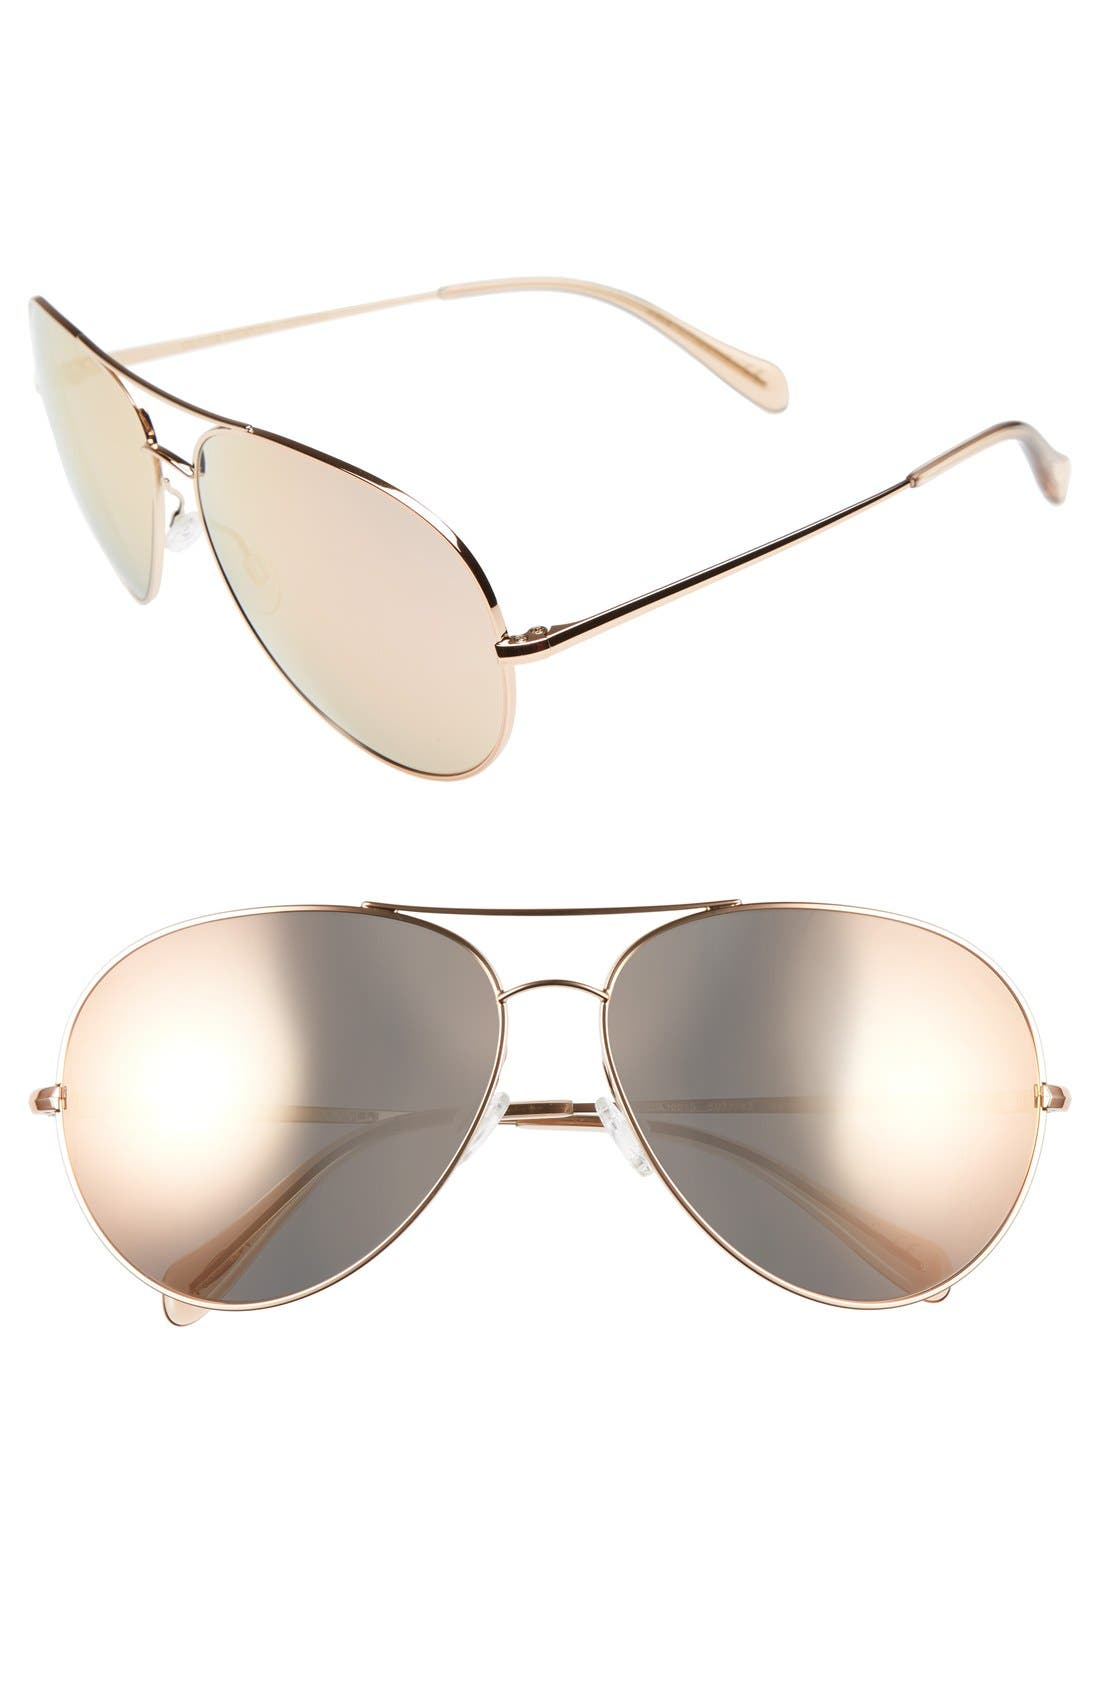 Oliver Peoples Sayer 63mm Oversized Aviator Sunglasses